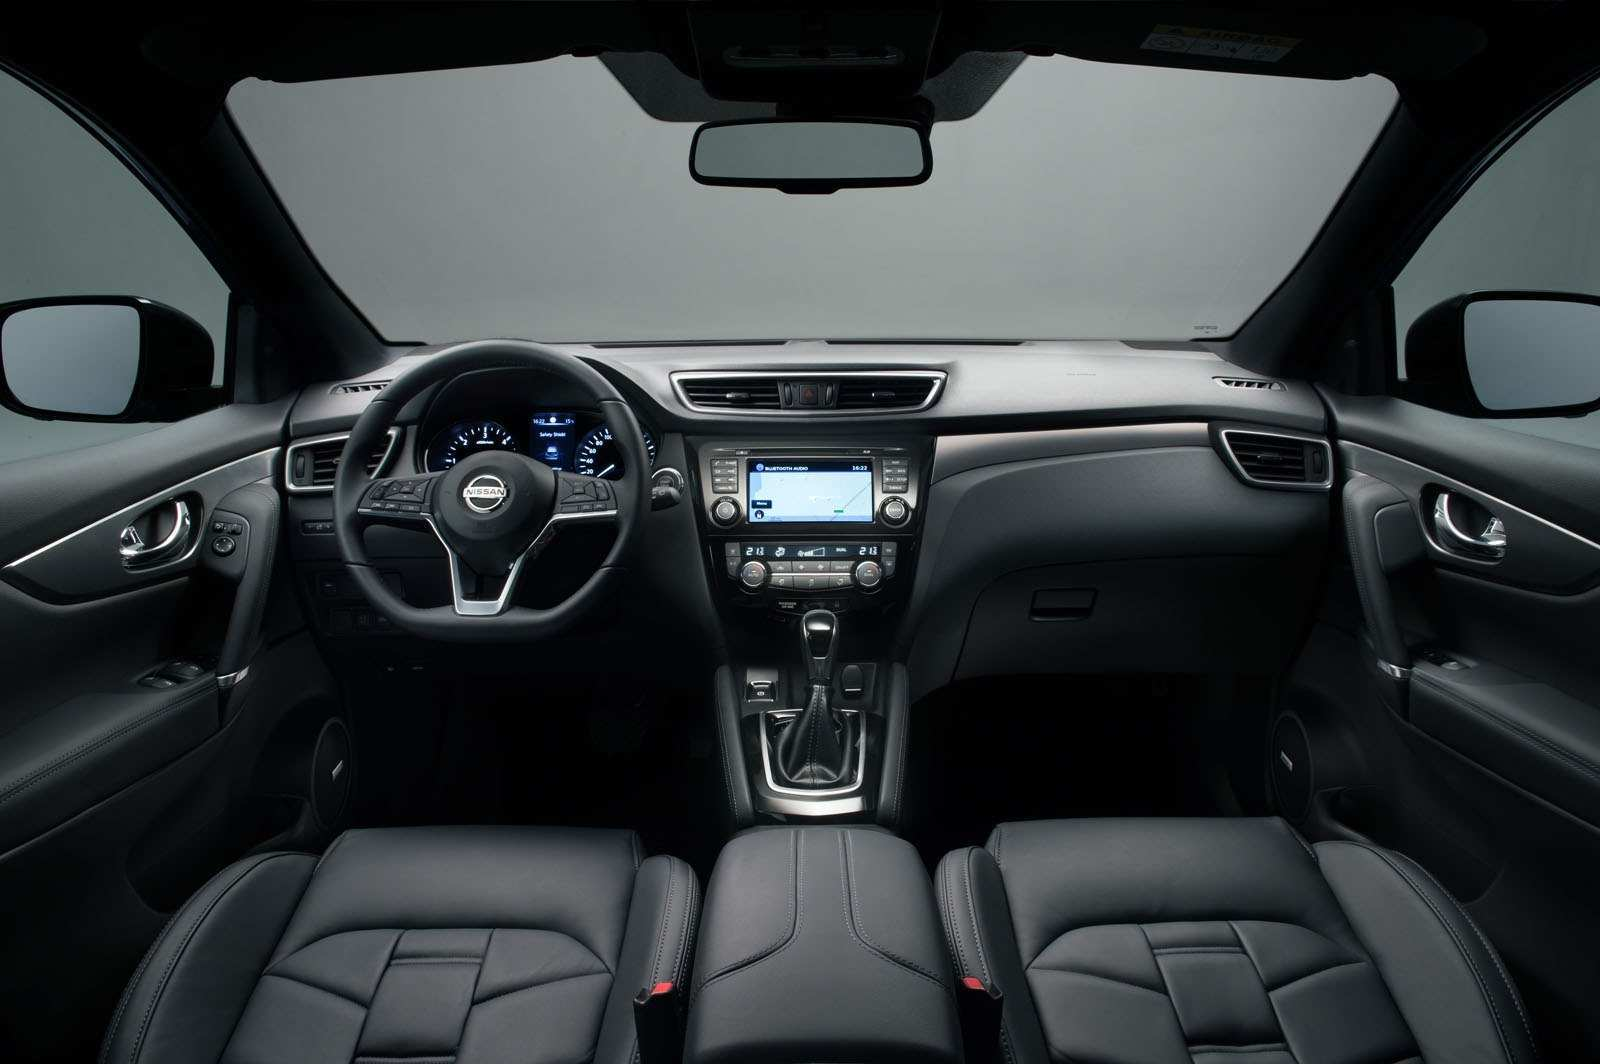 55 All New Nissan Qashqai 2020 Interior Reviews for Nissan Qashqai 2020 Interior